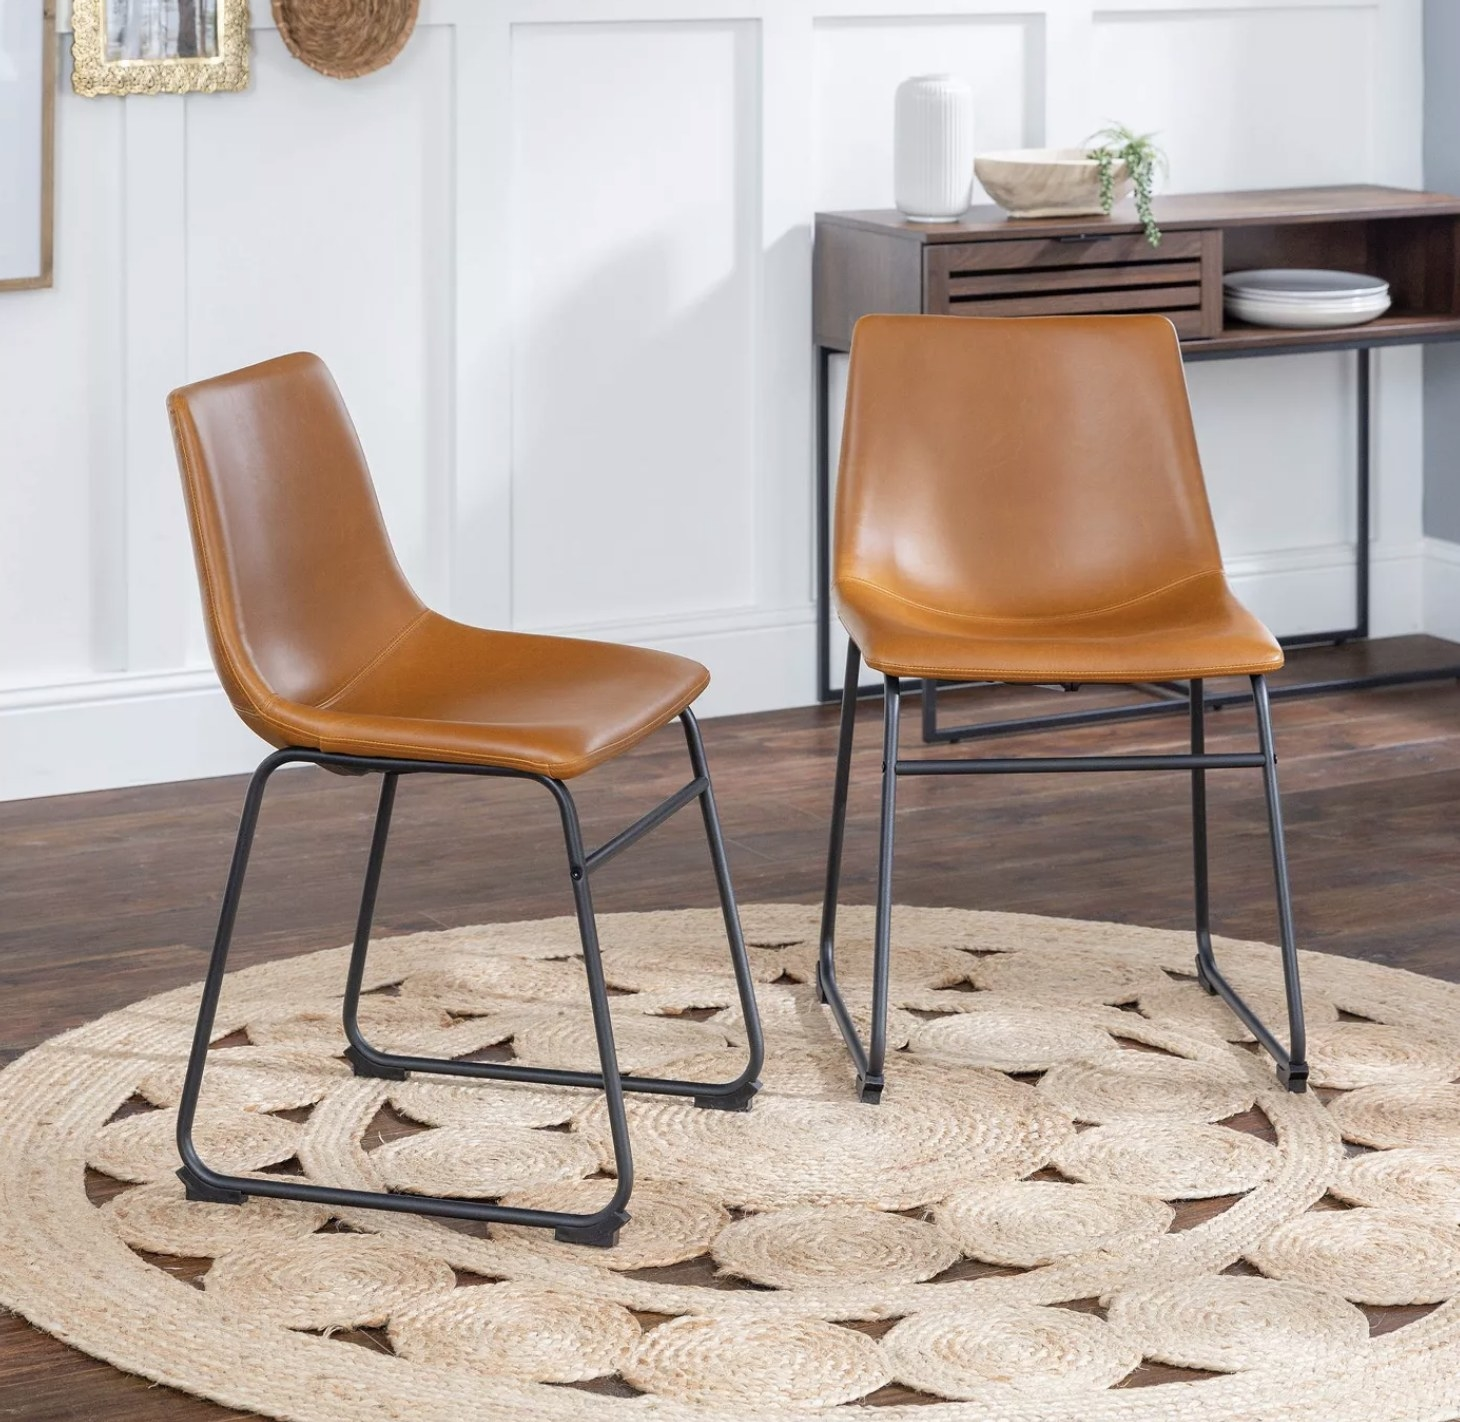 Two brown faux leather chairs in a living space